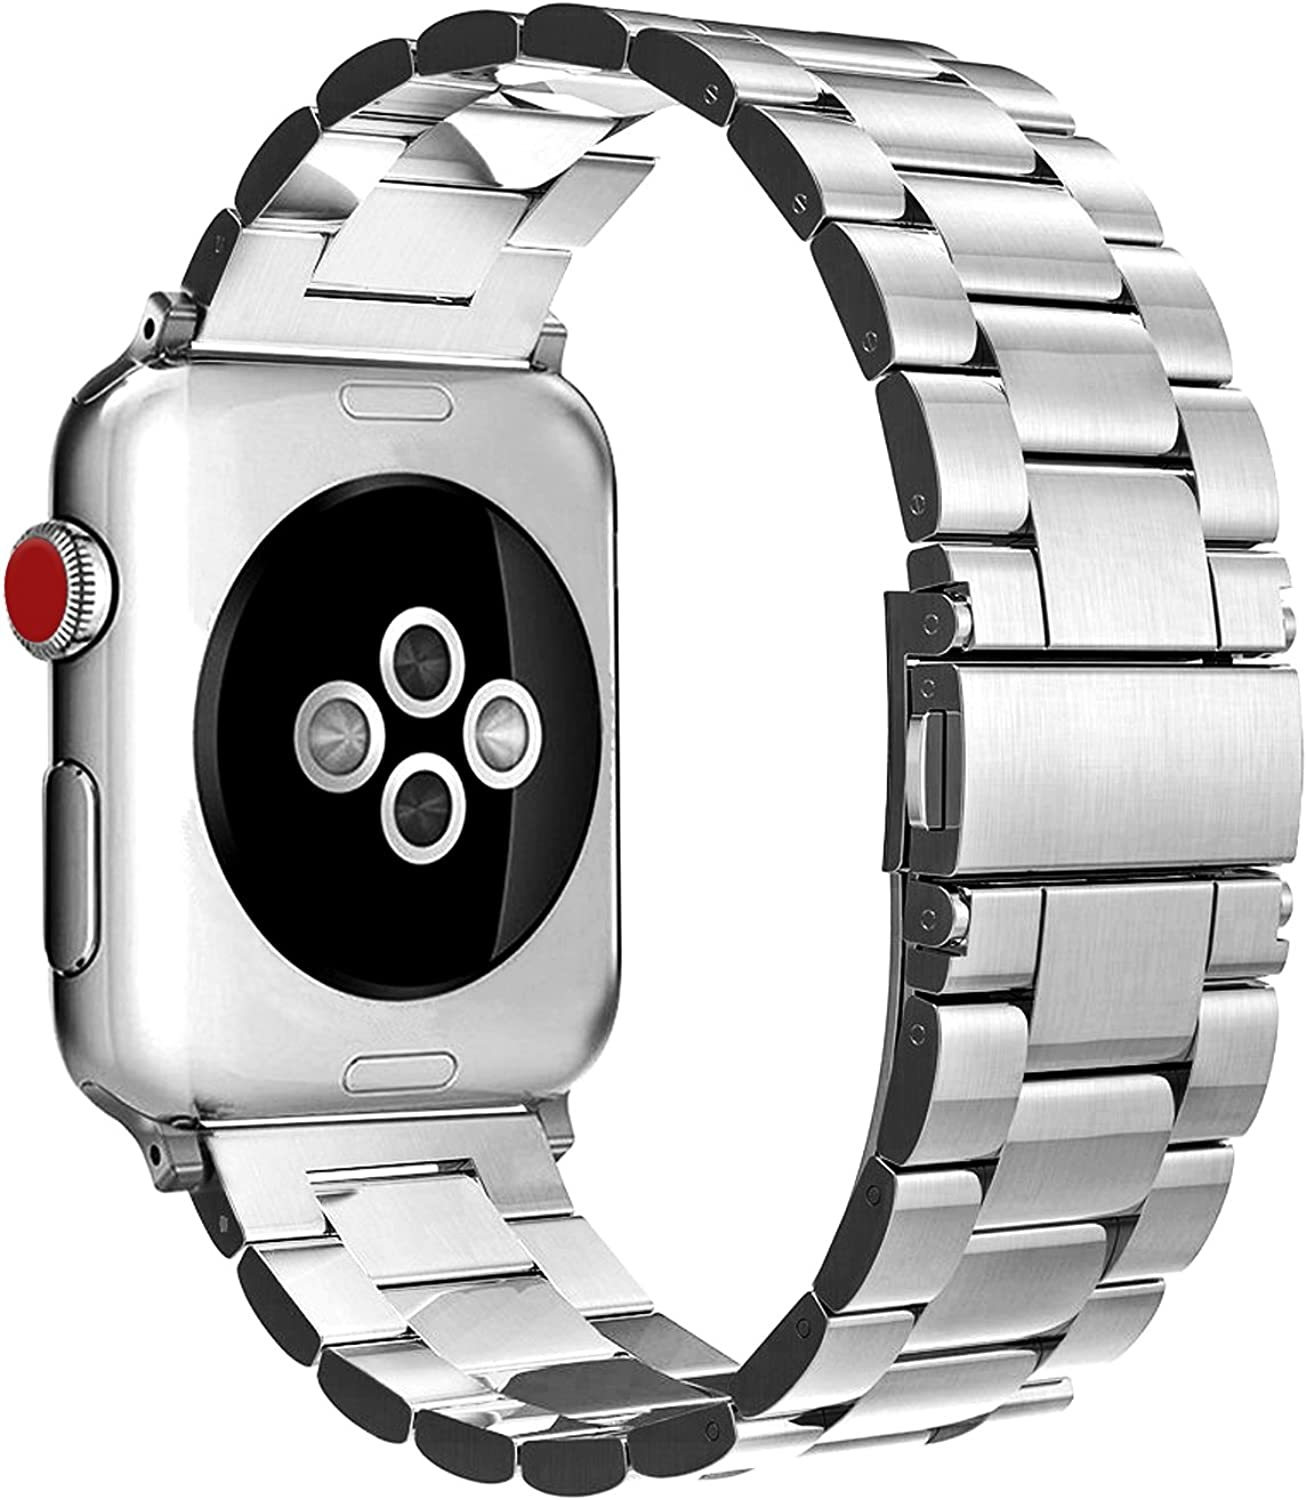 Fintie Band Compatible with Apple Watch 44mm 42mm Series 6/5/4/3/2/1/SE, Premium Stainless Steel Metal Replacement Wrist Strap Bracelet Compatible with All Versions 44mm 42mm Apple Watch, Silver